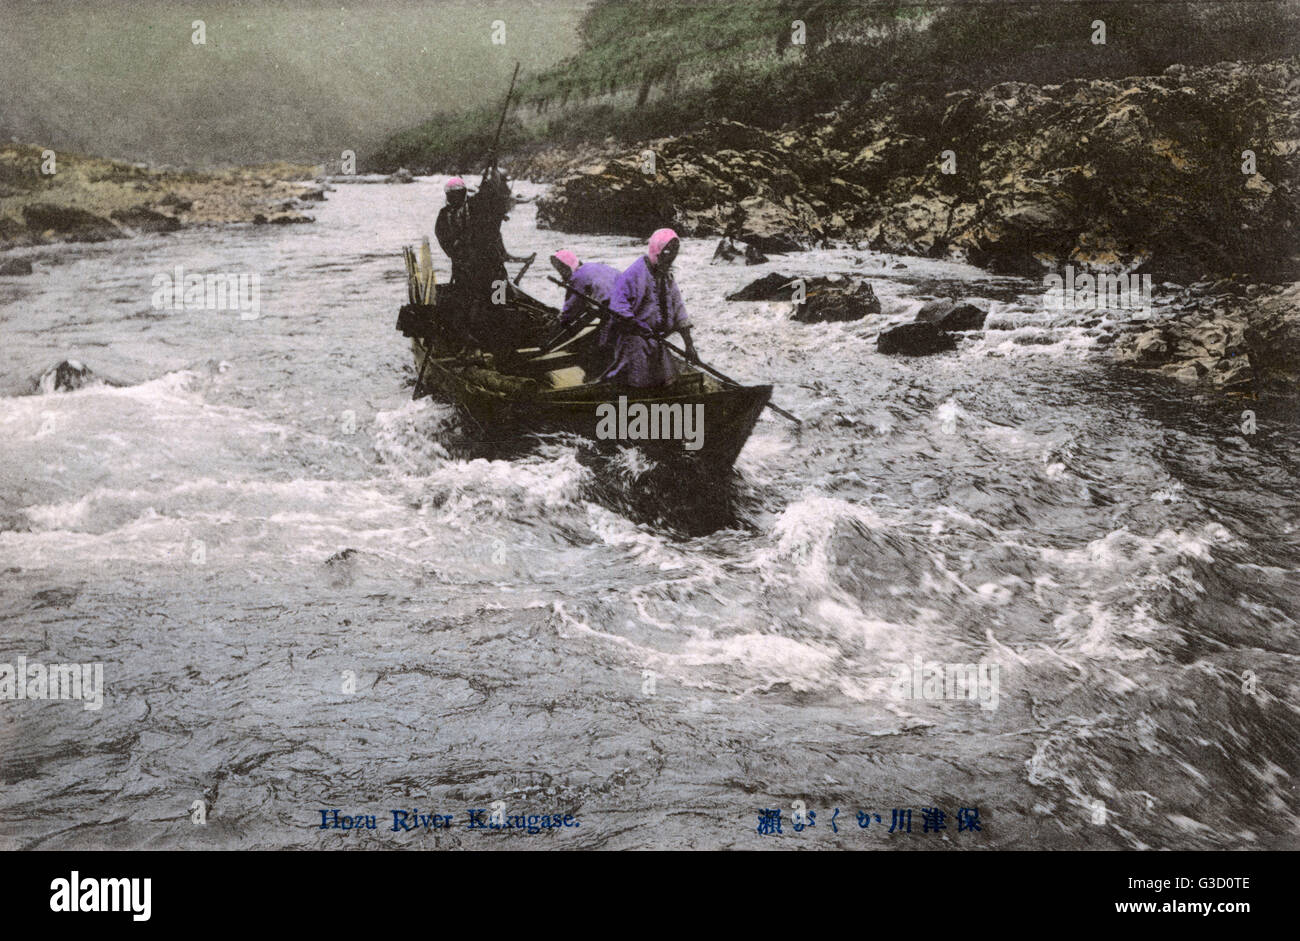 Japan - Navigating the rapids of the Hozu River - a part of Katsura River in Kyoto Prefecture, Japan     Date: circa - Stock Image